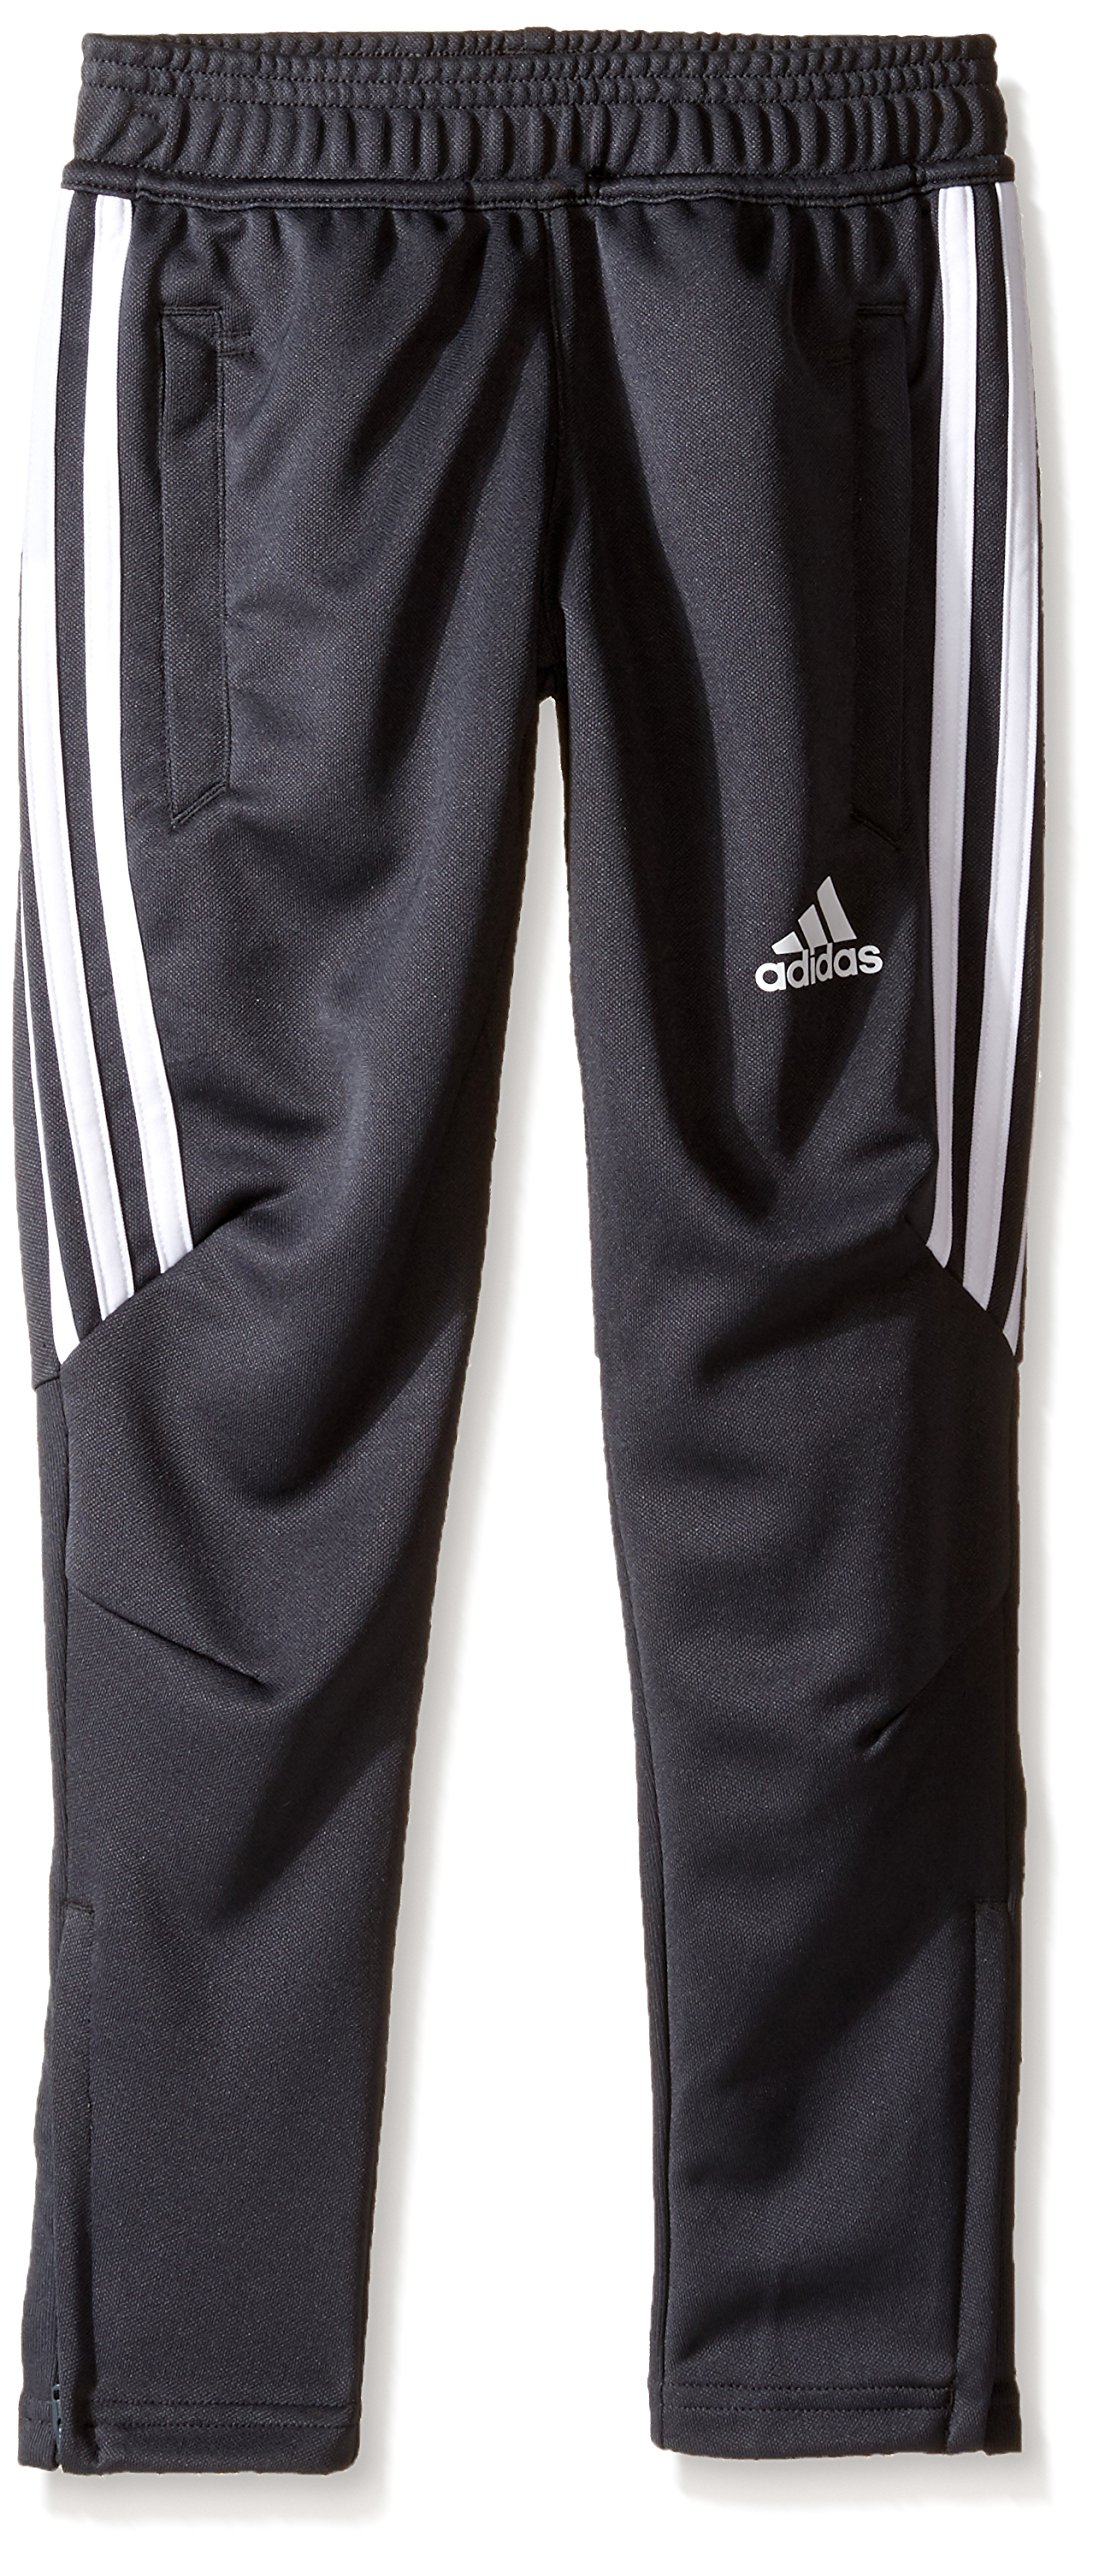 adidas Youth Soccer Tiro 17 Pants, XX-Small - Dark Grey/White/White